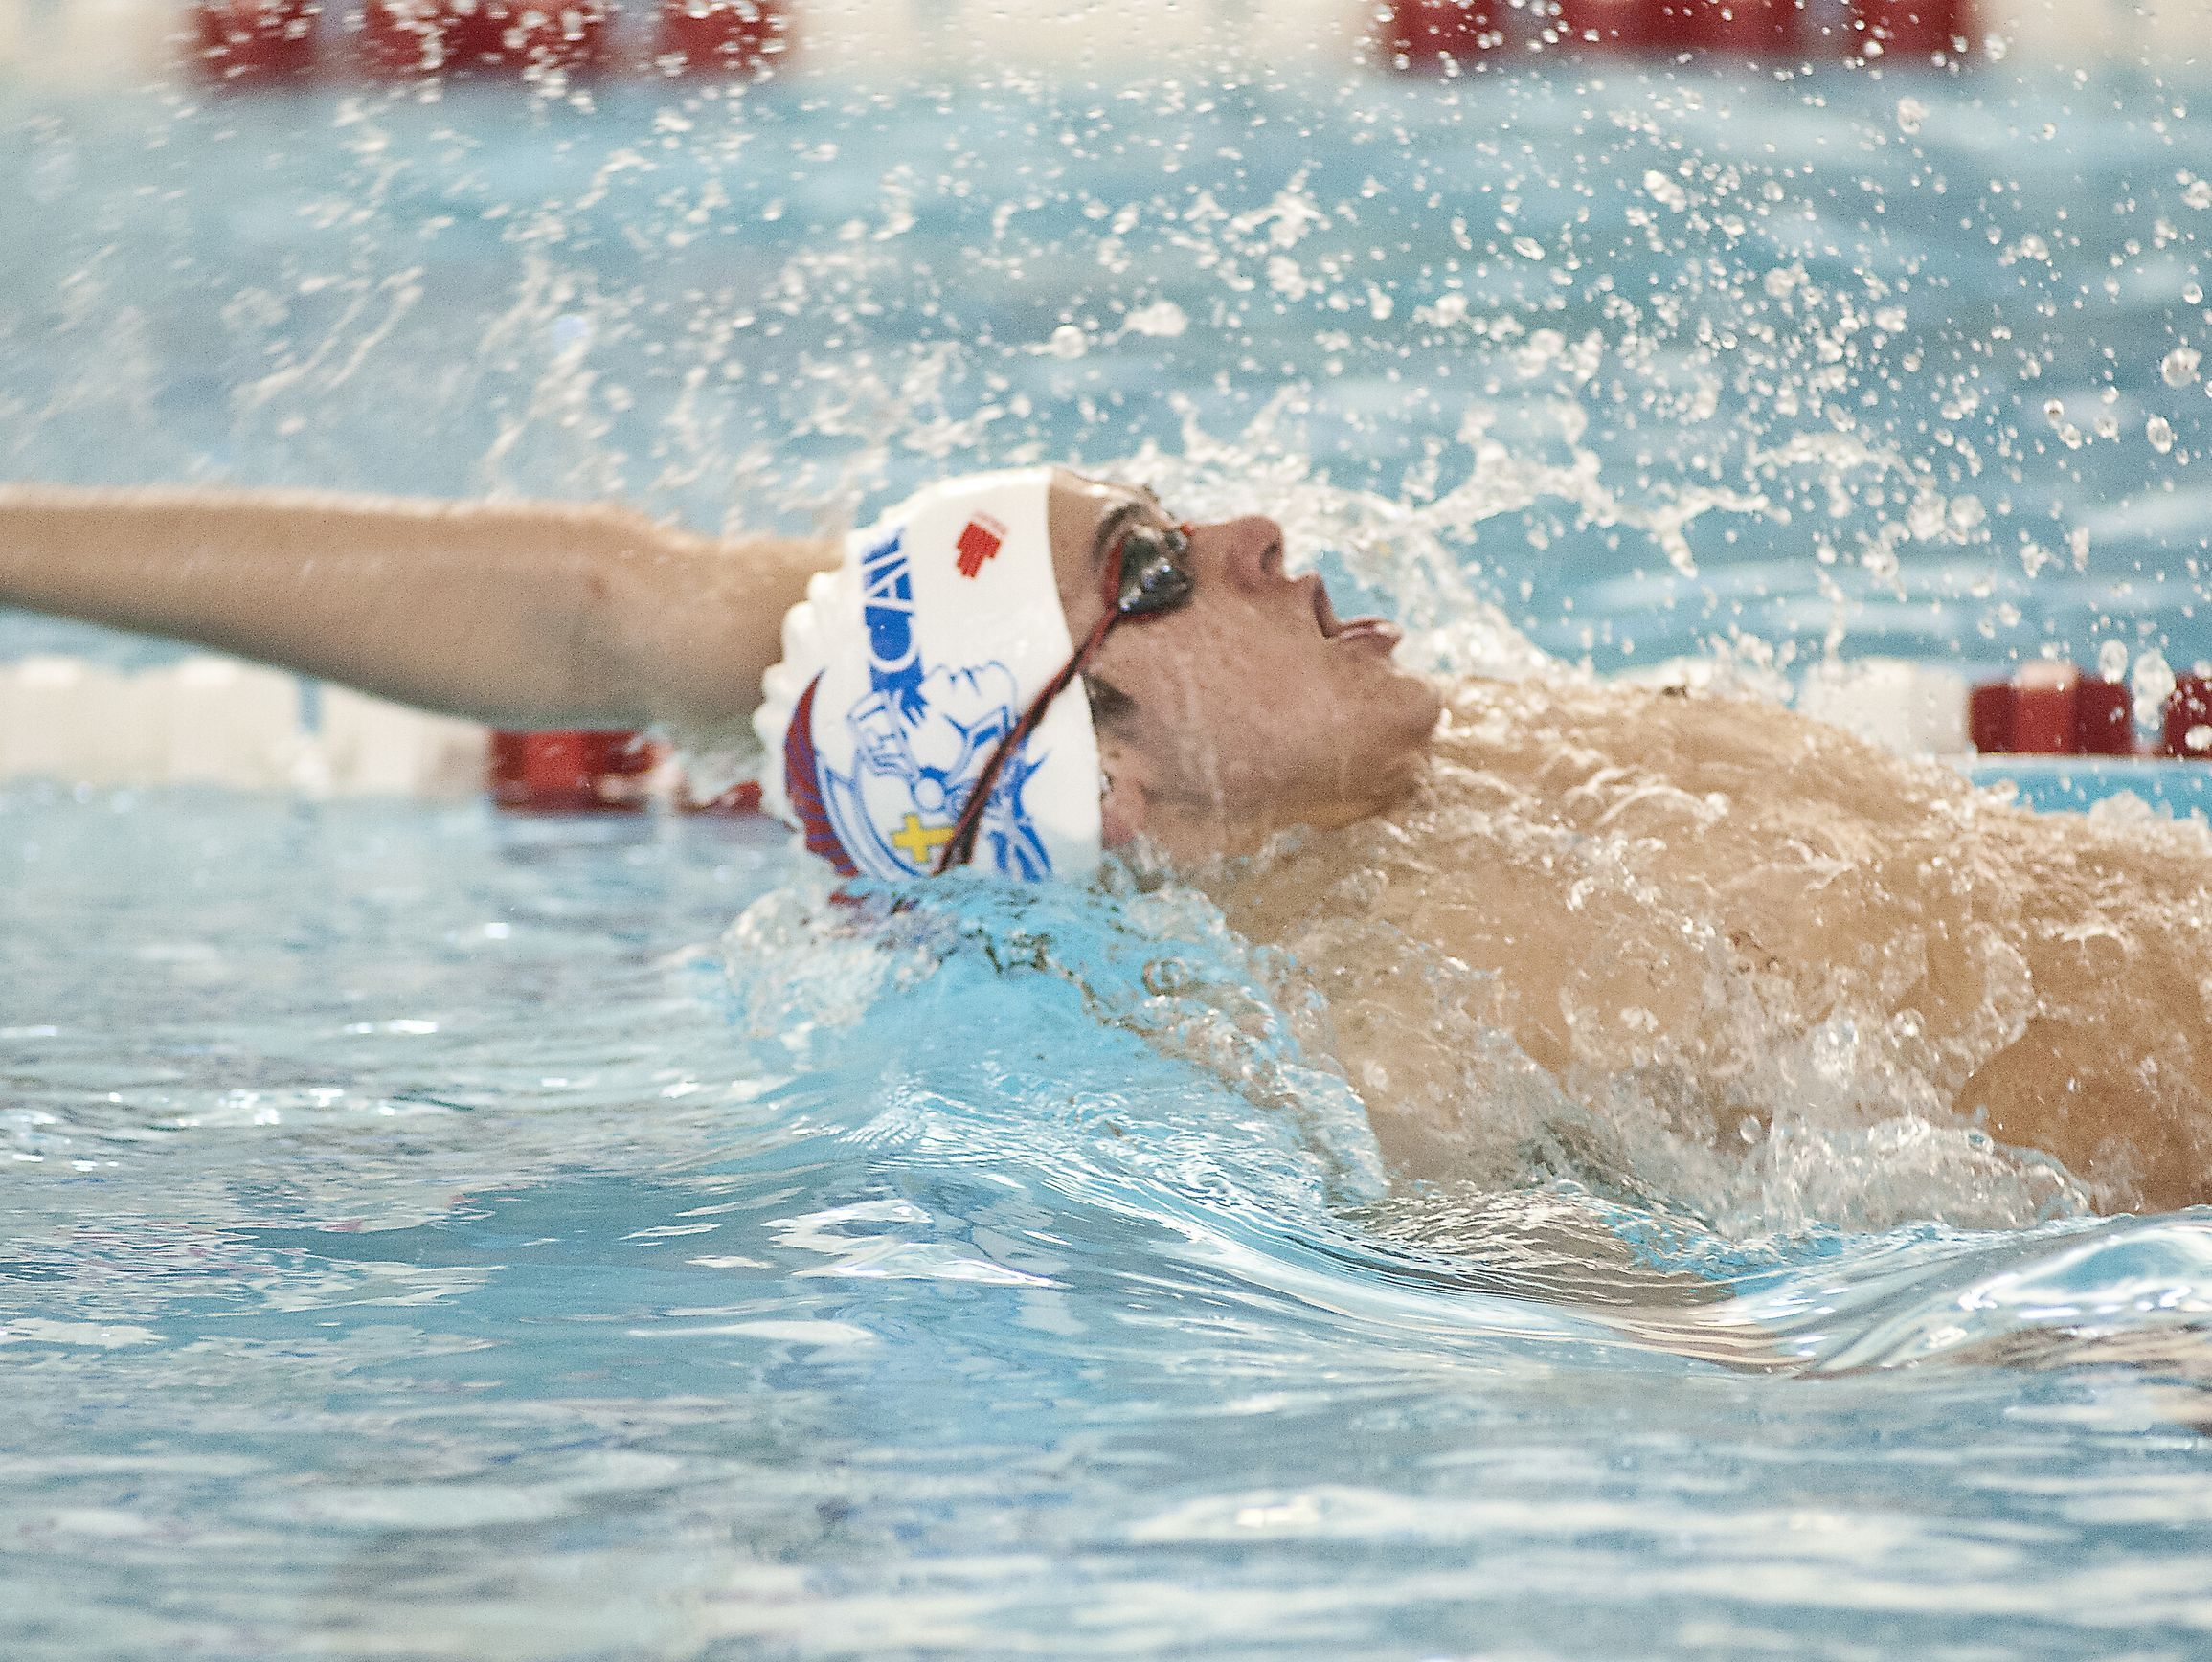 Christina Academy of Louisville's Nicolas Albiero takes 1st place in the KHSAA boys state swimming championships 100 yard backstroke setting a new state record with a time of 47.23 seconds. 25 February 2017